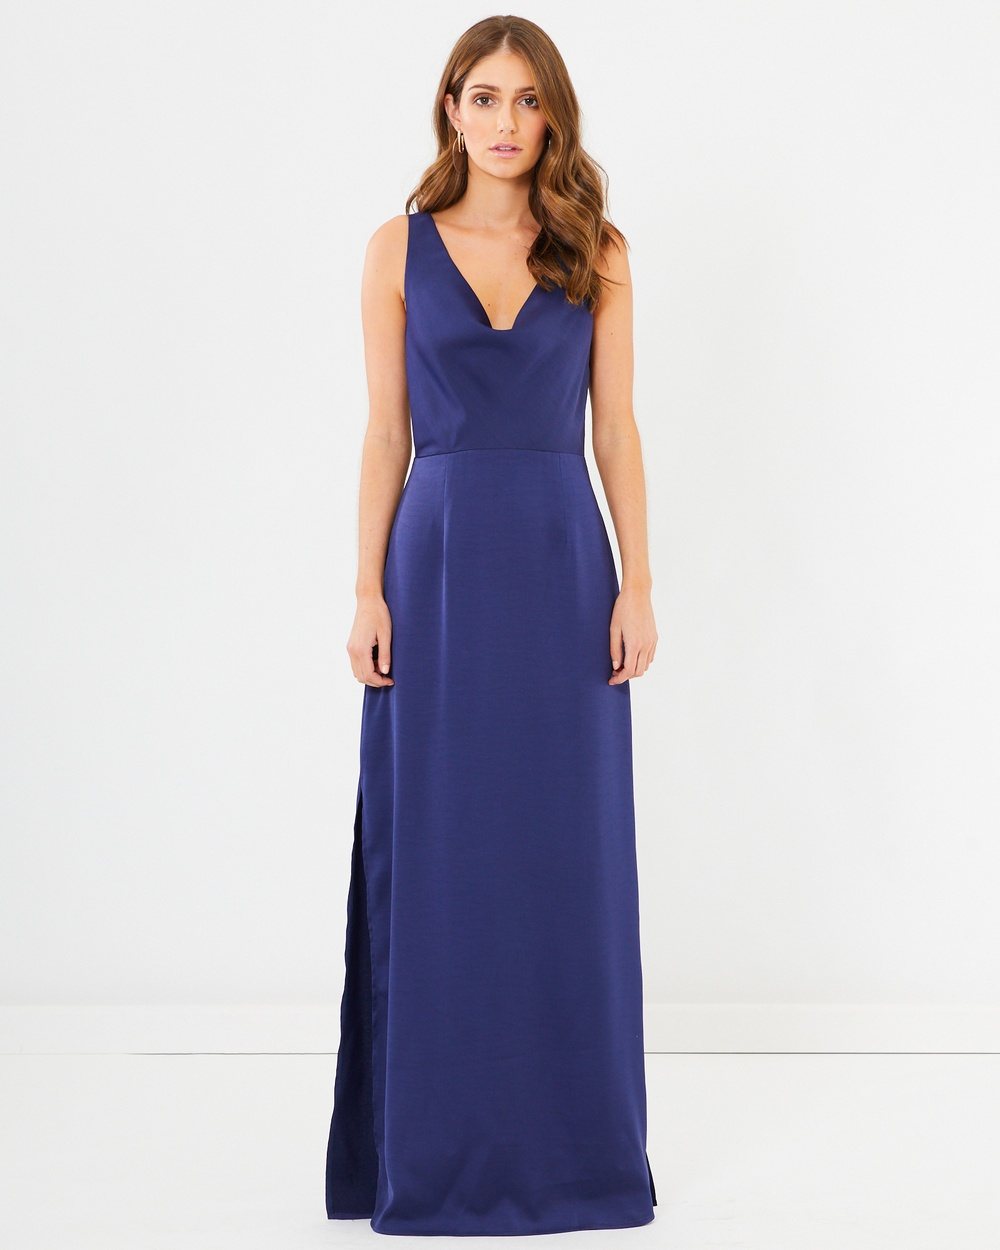 CHANCERY Meredith Cowl Neck Dress Bridesmaid Dresses Navy Meredith Cowl Neck Dress